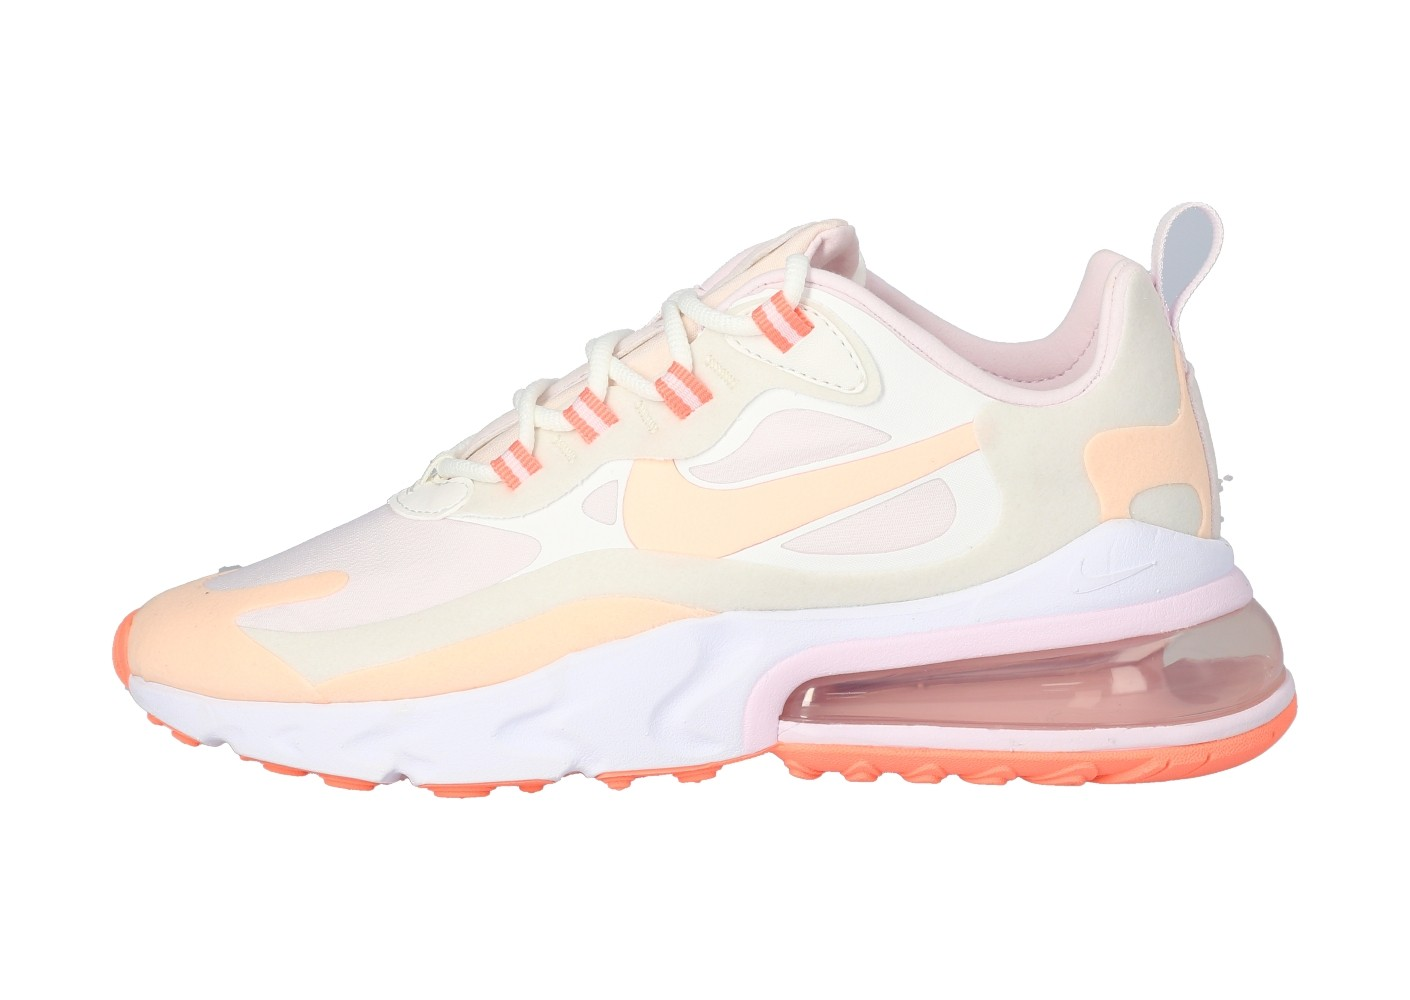 Nike Air Max 270 React grise et rose Chaussures Baskets